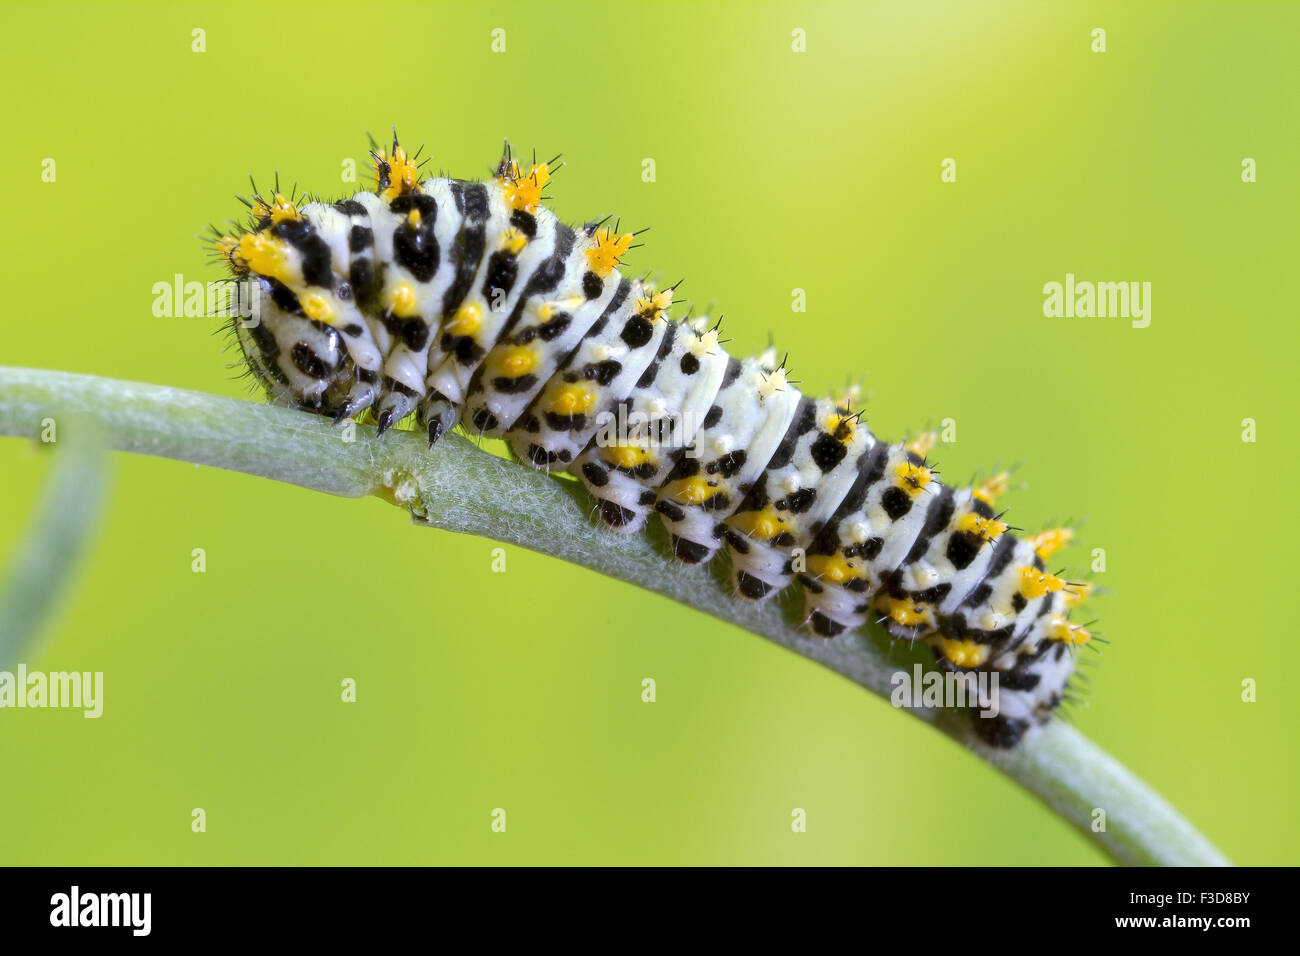 Swallowtail caterpillar at a very early stage. - Stock Image